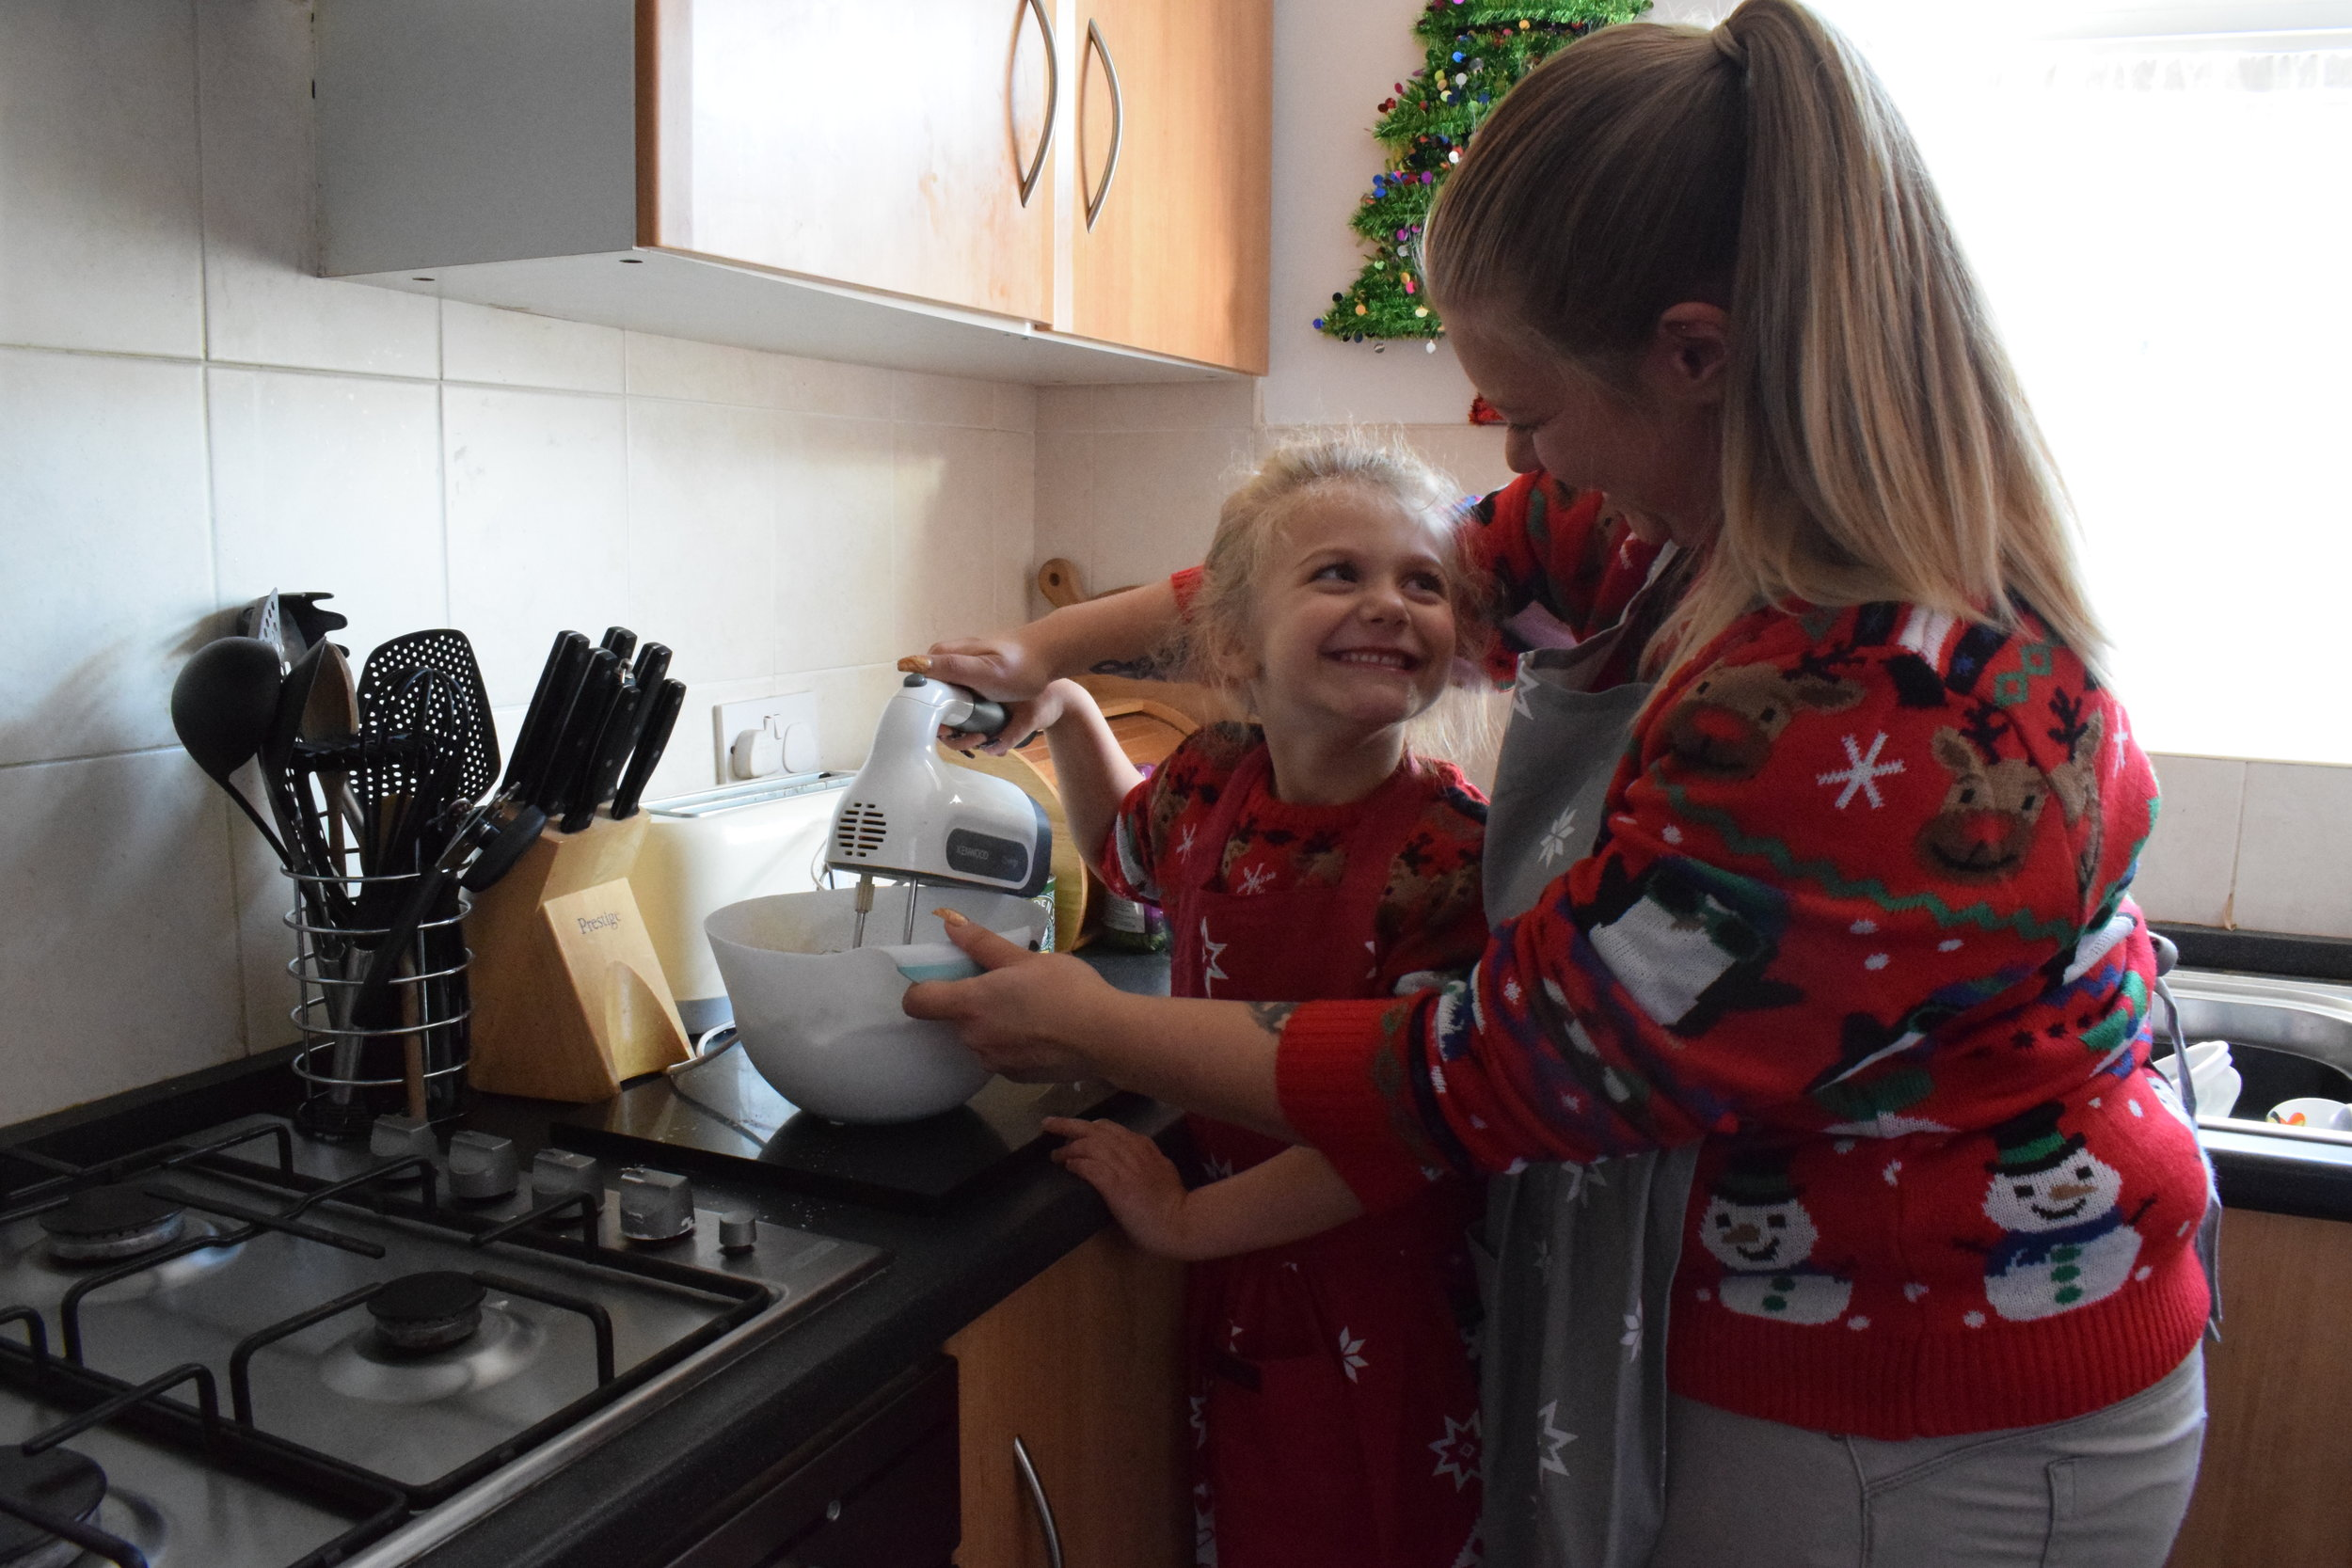 Christmas baking fun mum and daughter moment